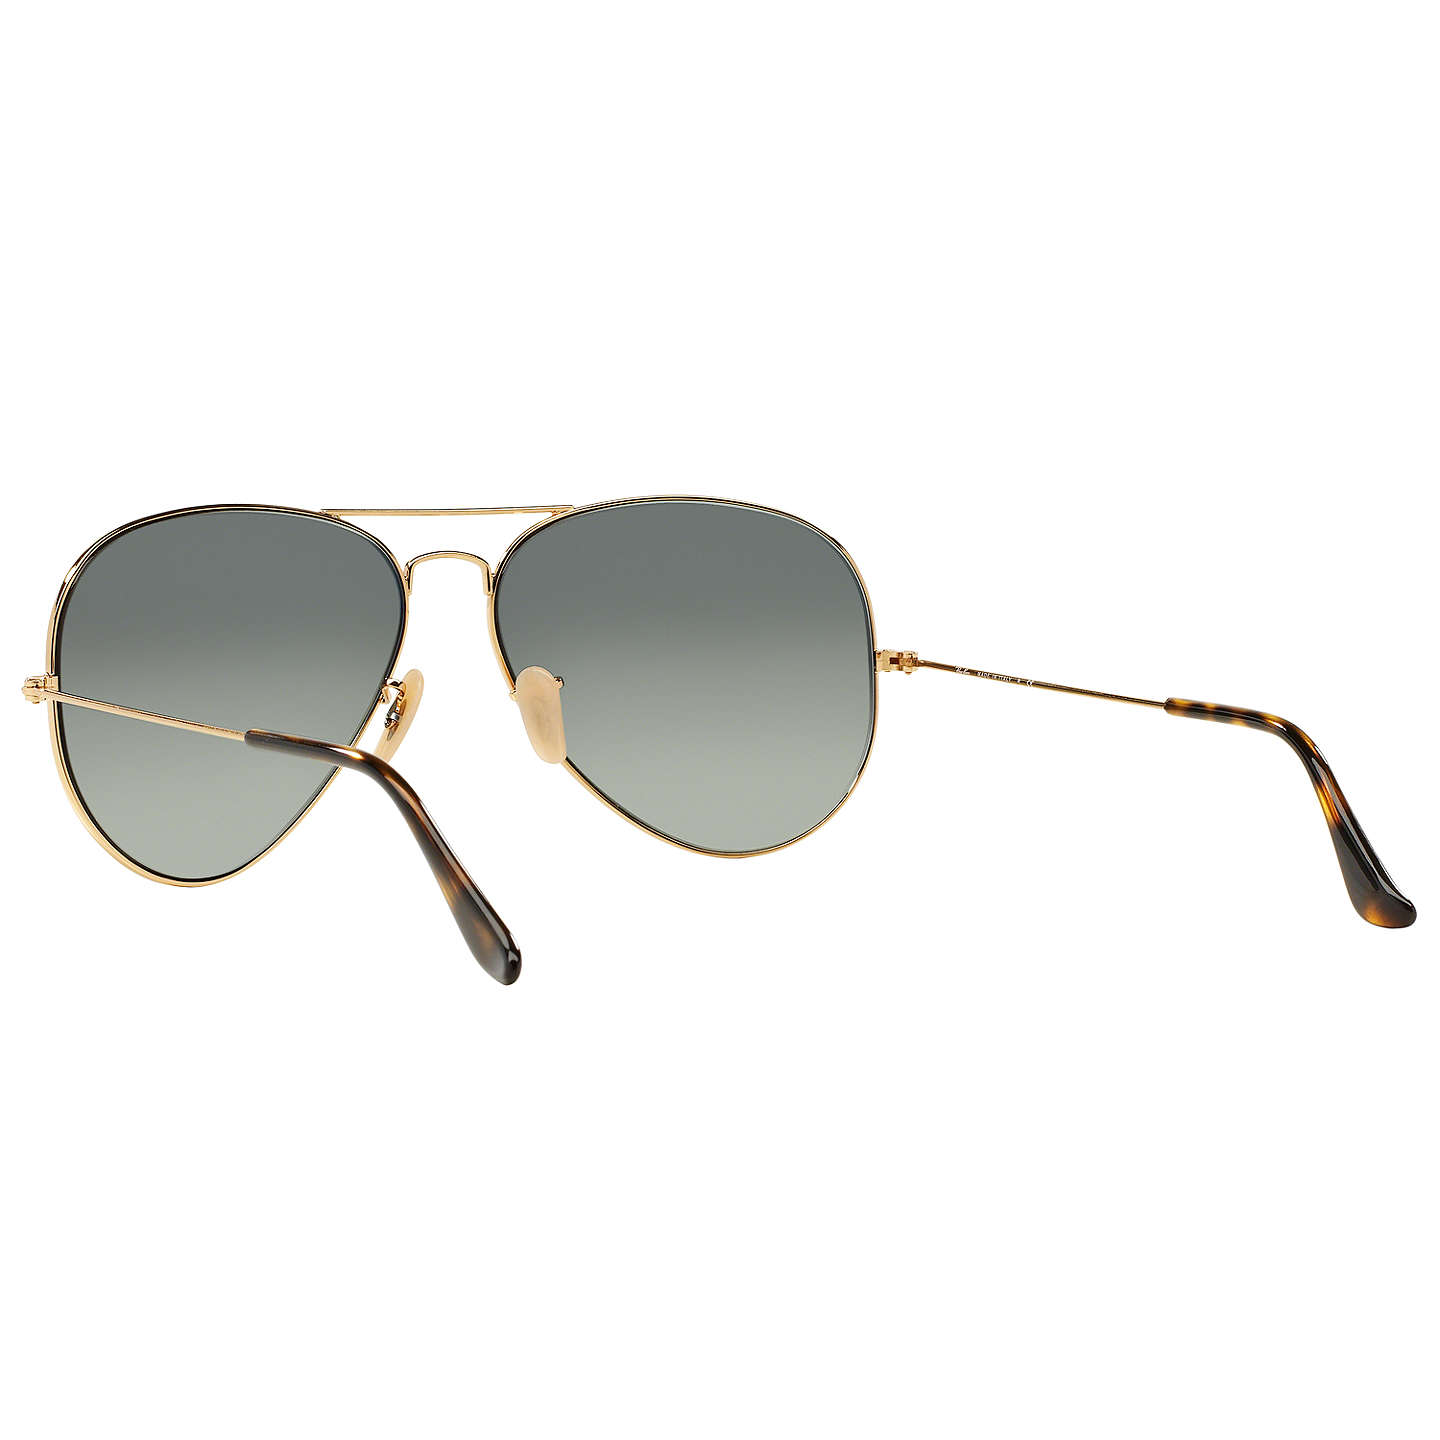 BuyRay-Ban RB3025 Iconic Gradient Aviator Sunglasses, Grey Online at johnlewis.com